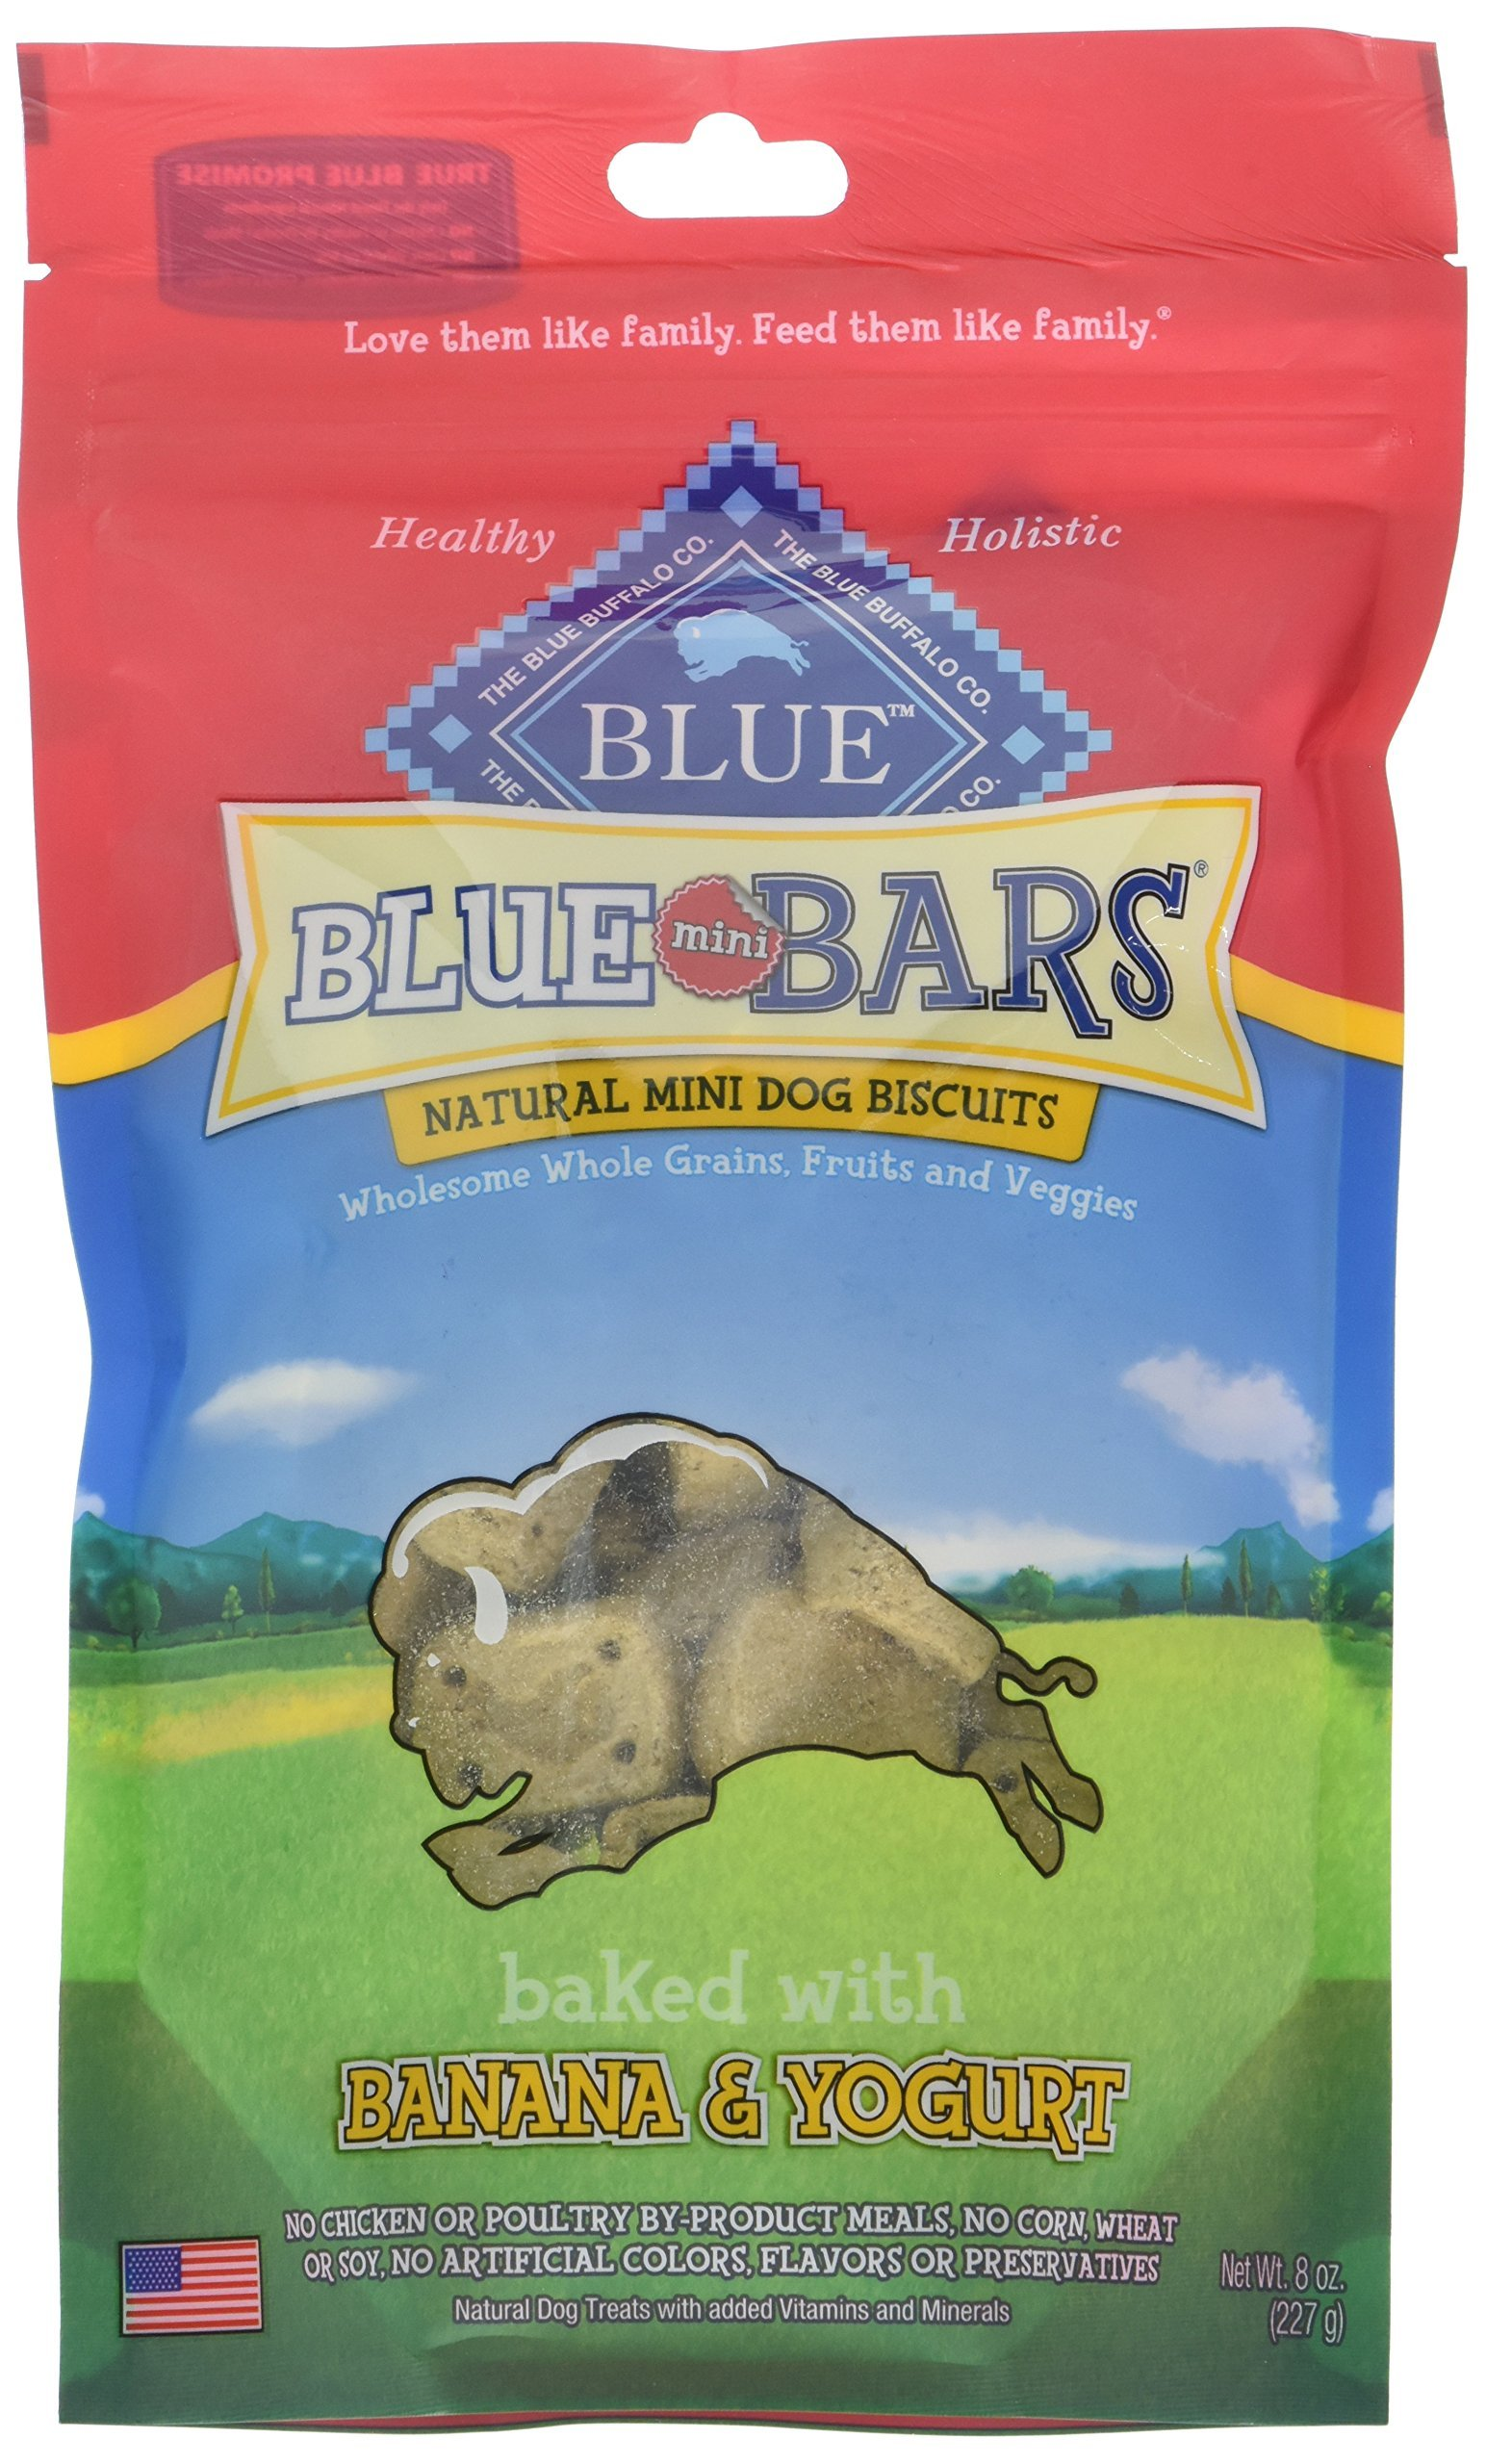 Blue Buffalo Wilderness Blue Mini Bars Dog Treats Variety Pack - 3 Flavors (Blueberry & Yogurt, Chicken & Cheddar, and Banana & Yogurt) - 3 Pouches (8 Ounces Each)